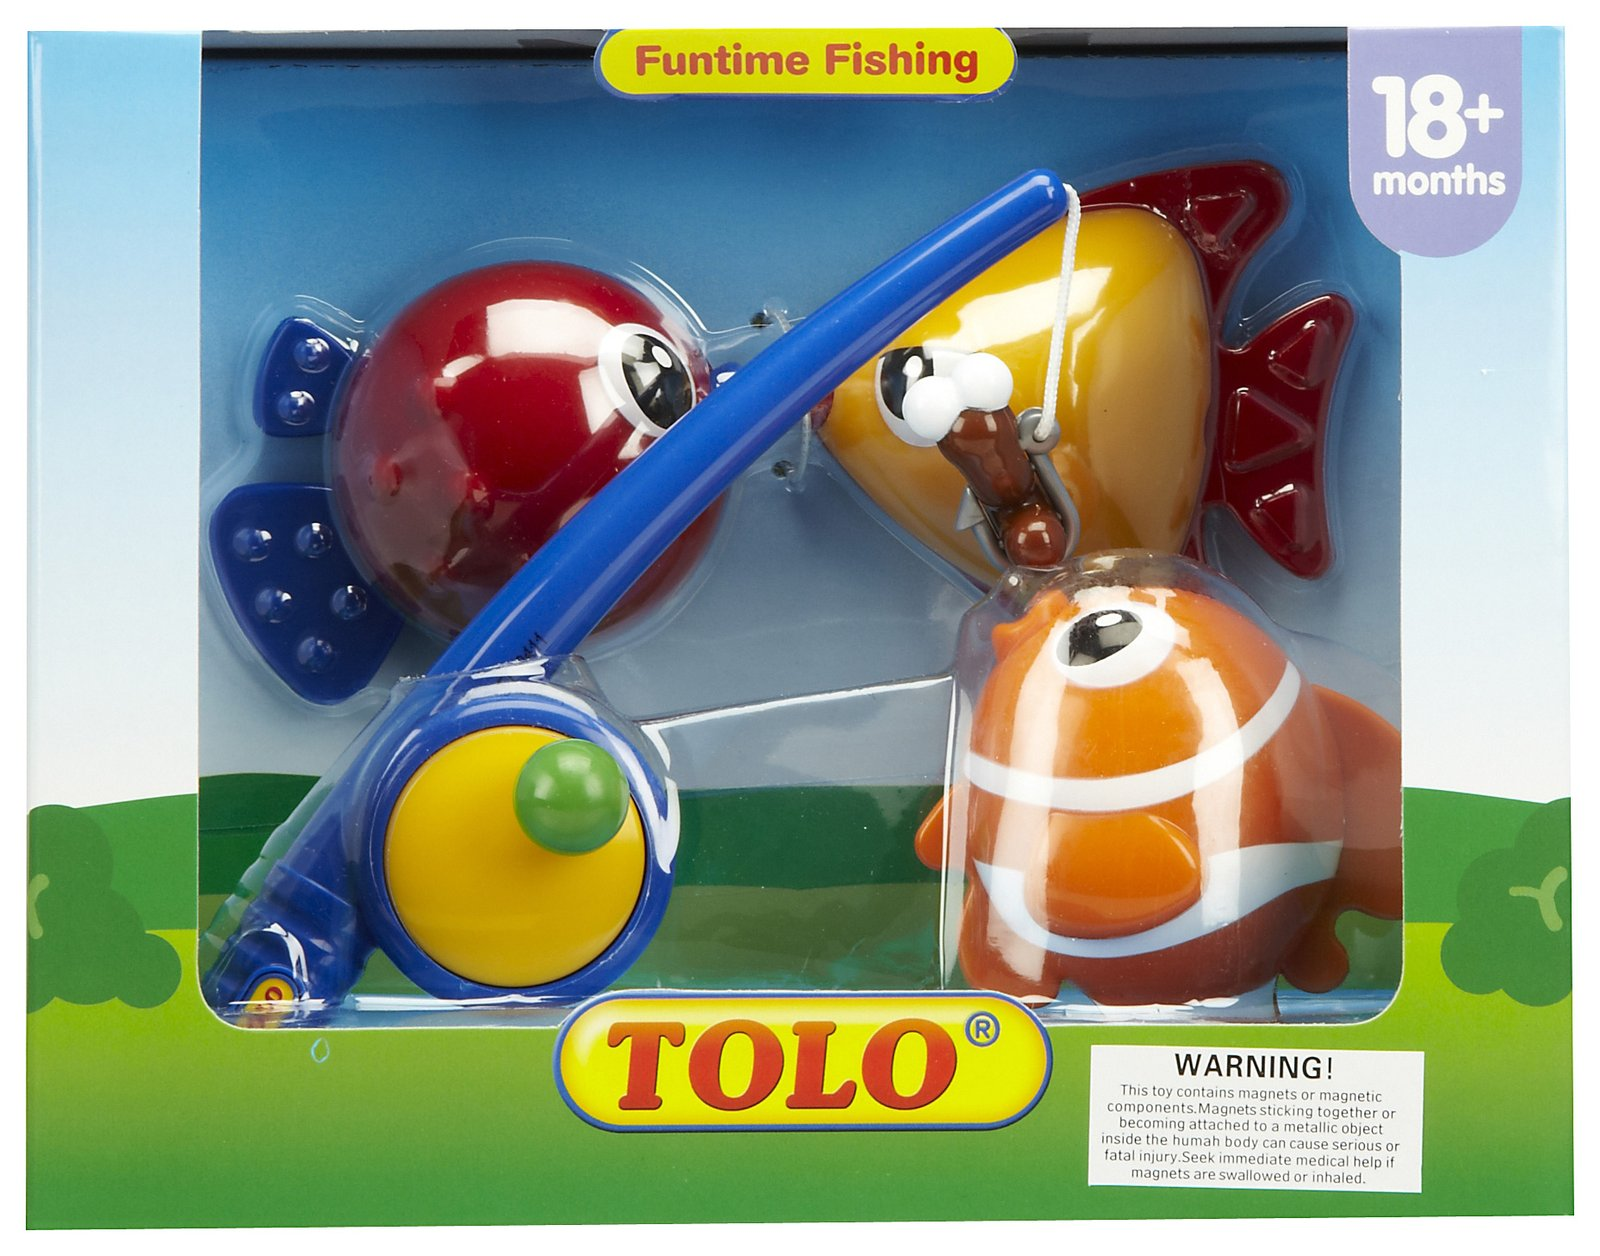 Tolo Toys Funtime Fishing - Reviews of Top 10 Fishing Gears - Go Fishing!